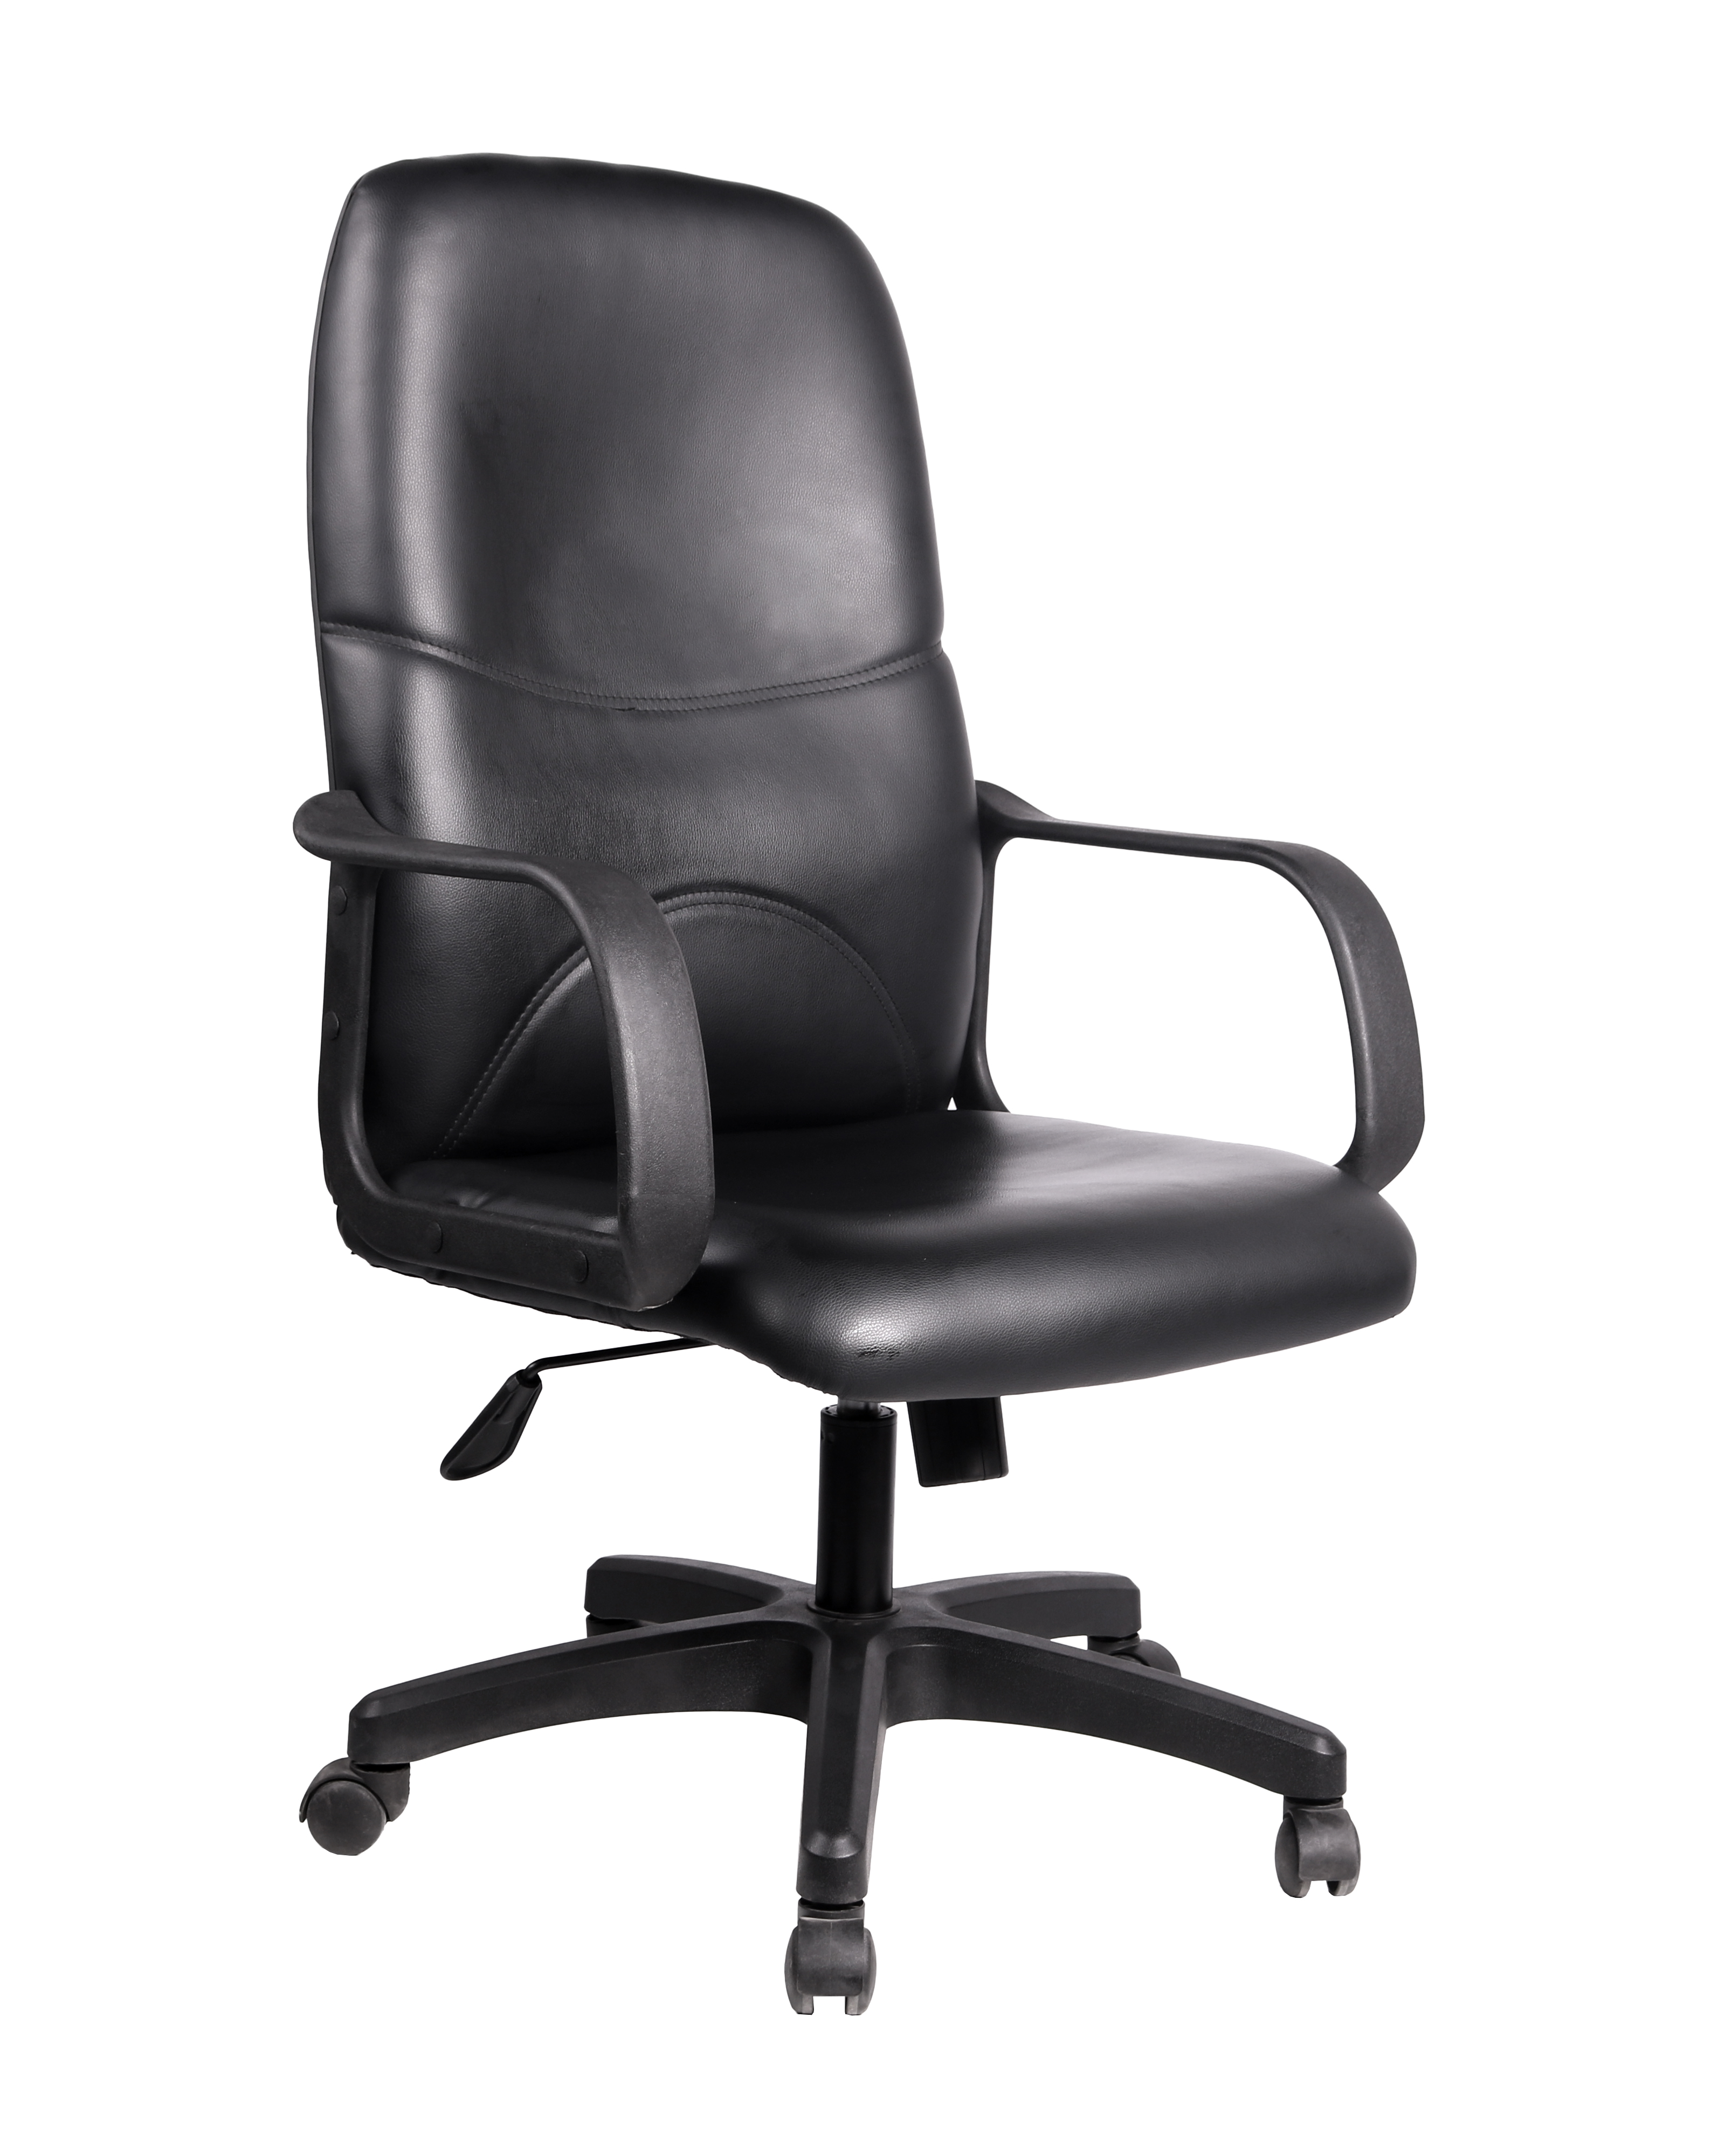 Modern leather office chair mid back swivel pu leather office chair executive office chair